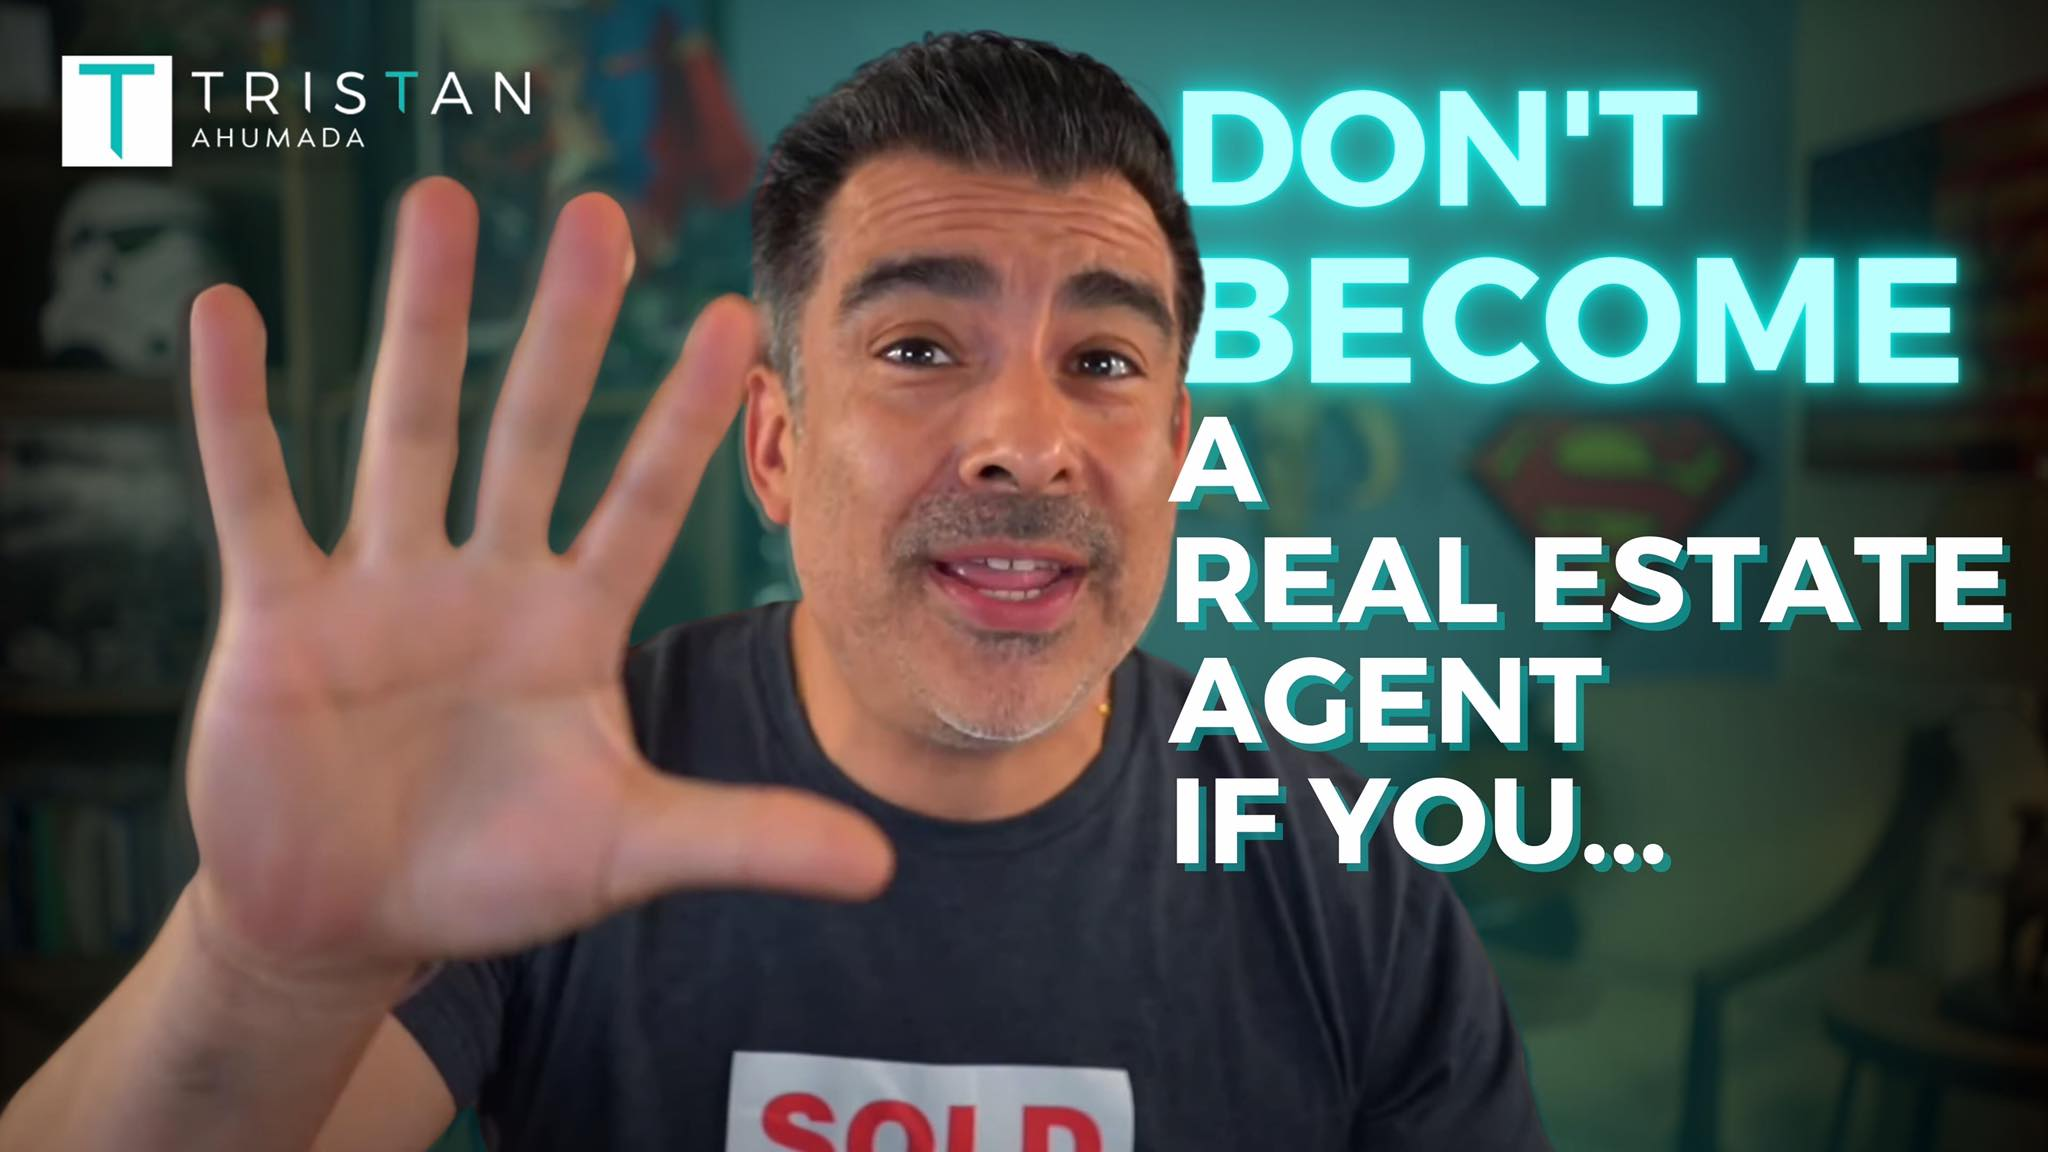 Don't become a real estate agent if you...